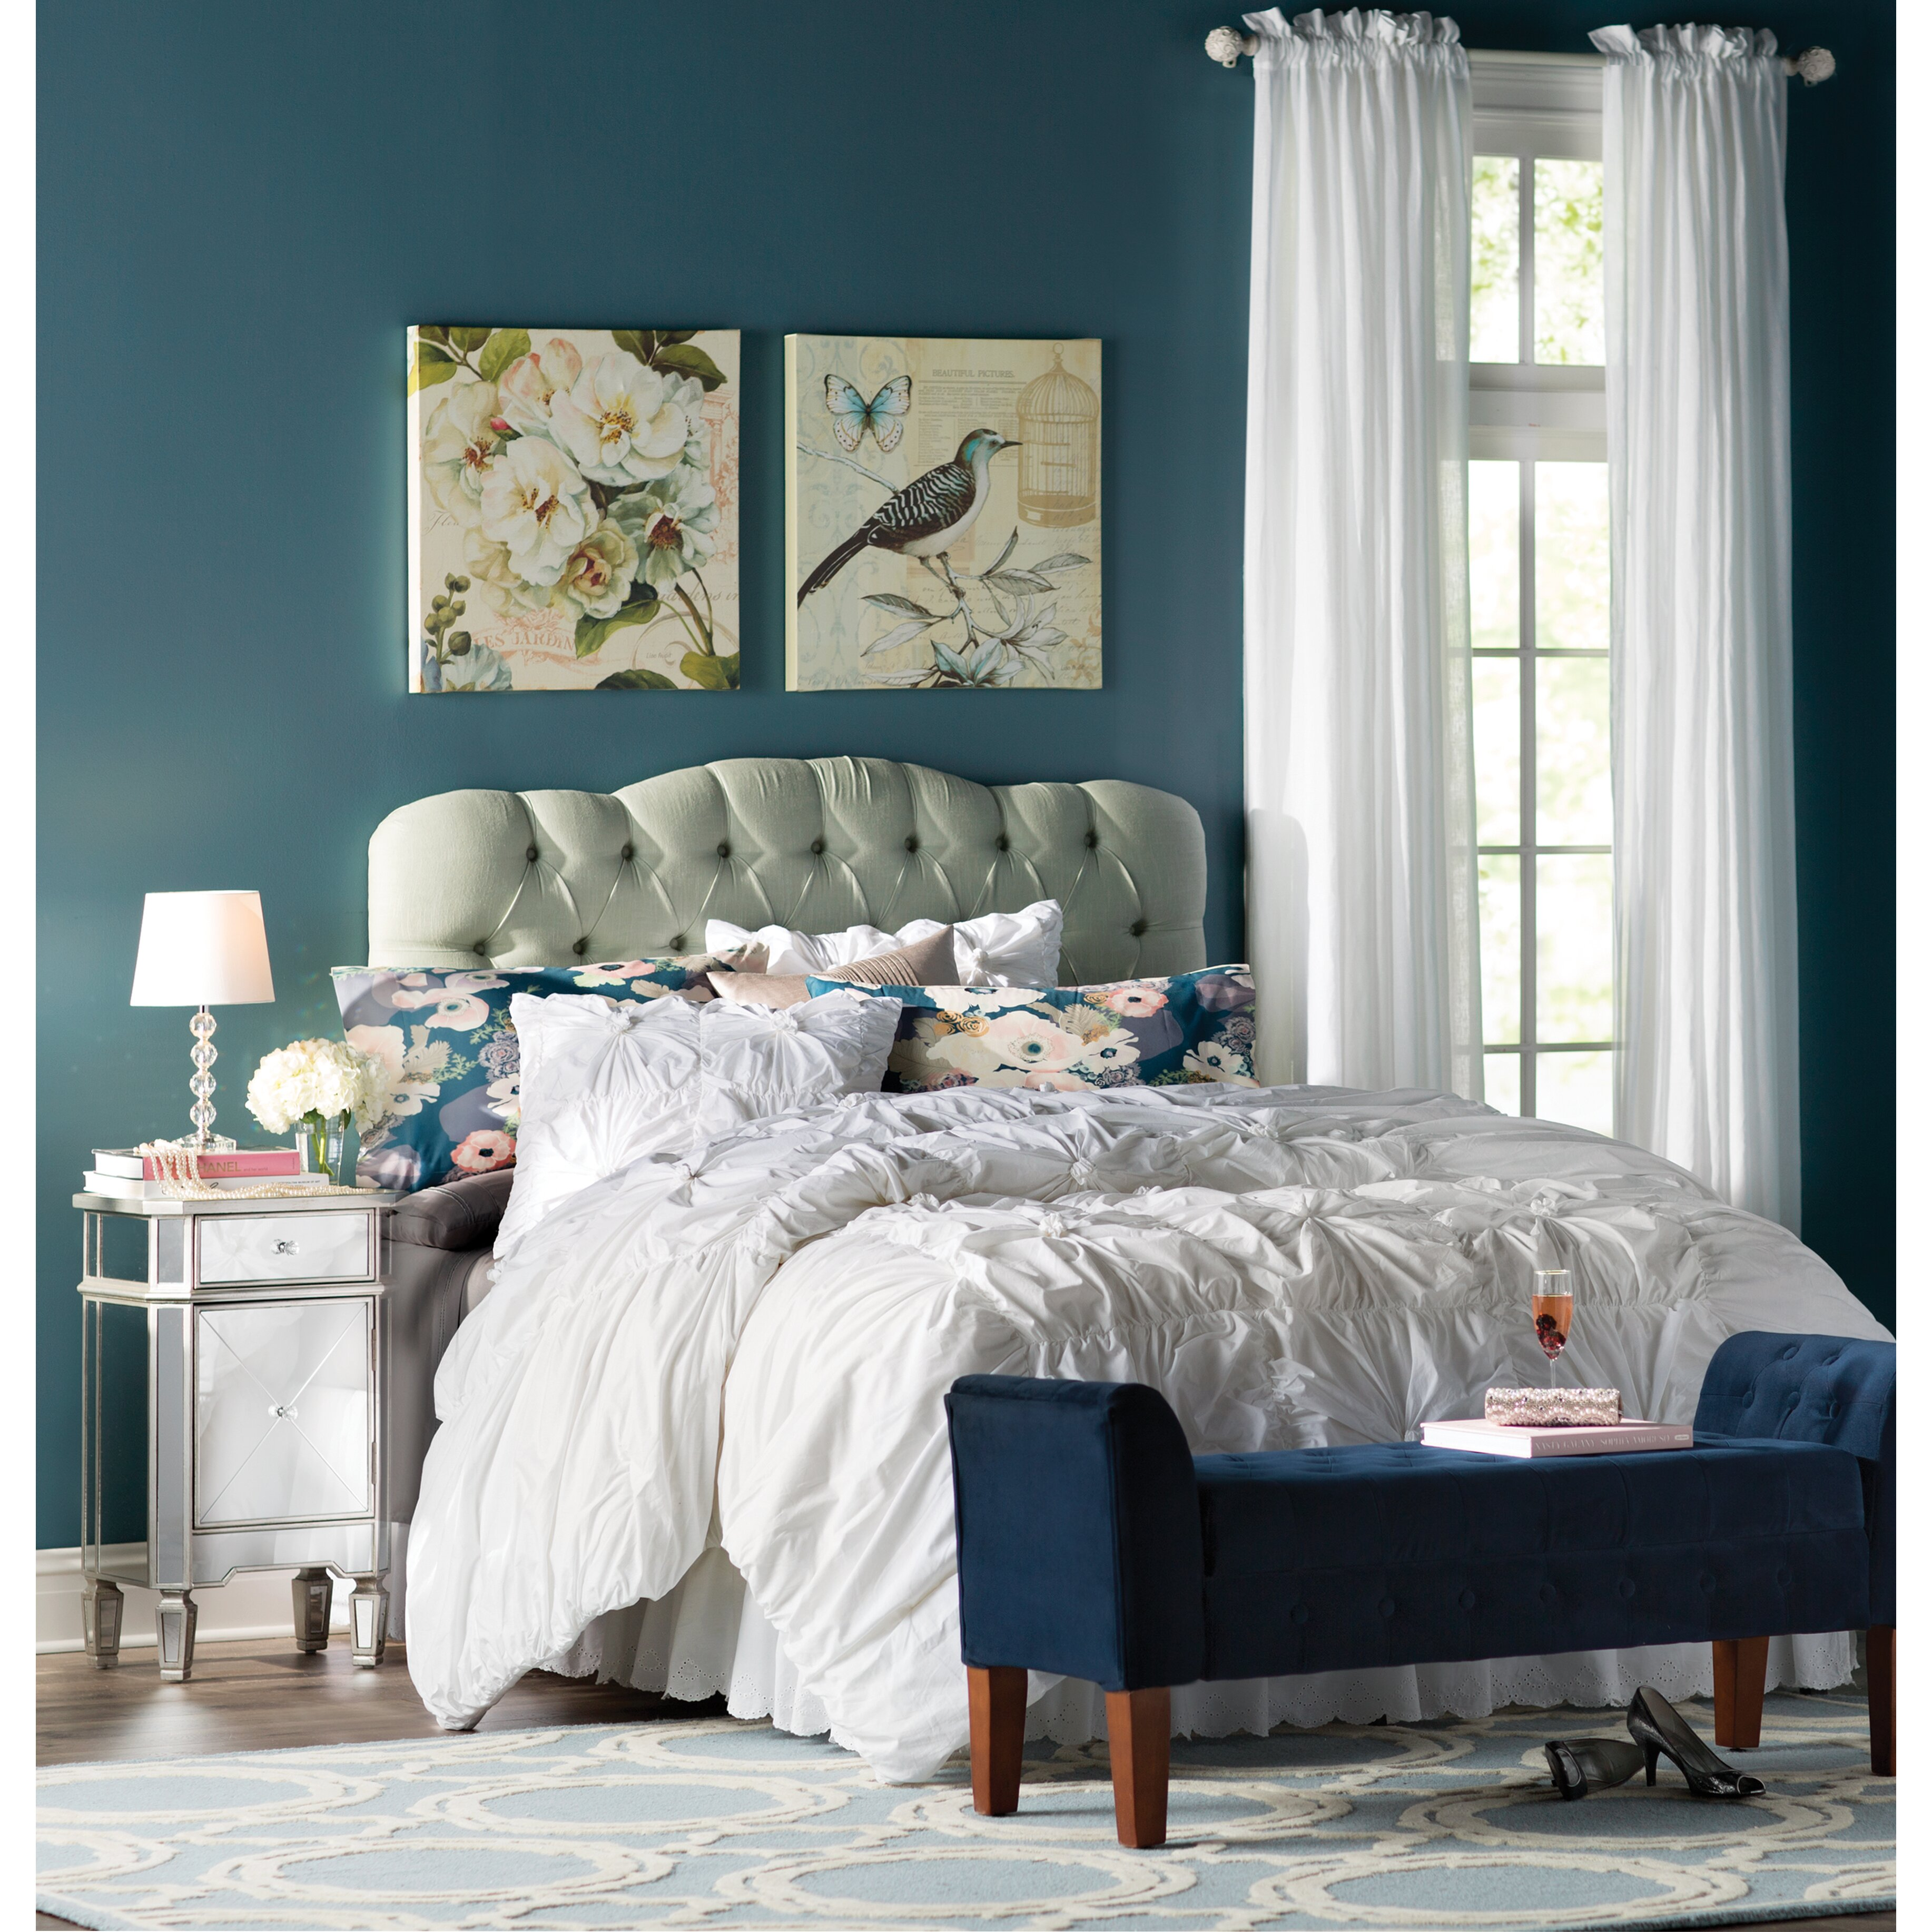 Mirrored Cabinets Bedroom House Of Hampton Rhiannon 1 Drawer Mirrored Cabinet Reviews